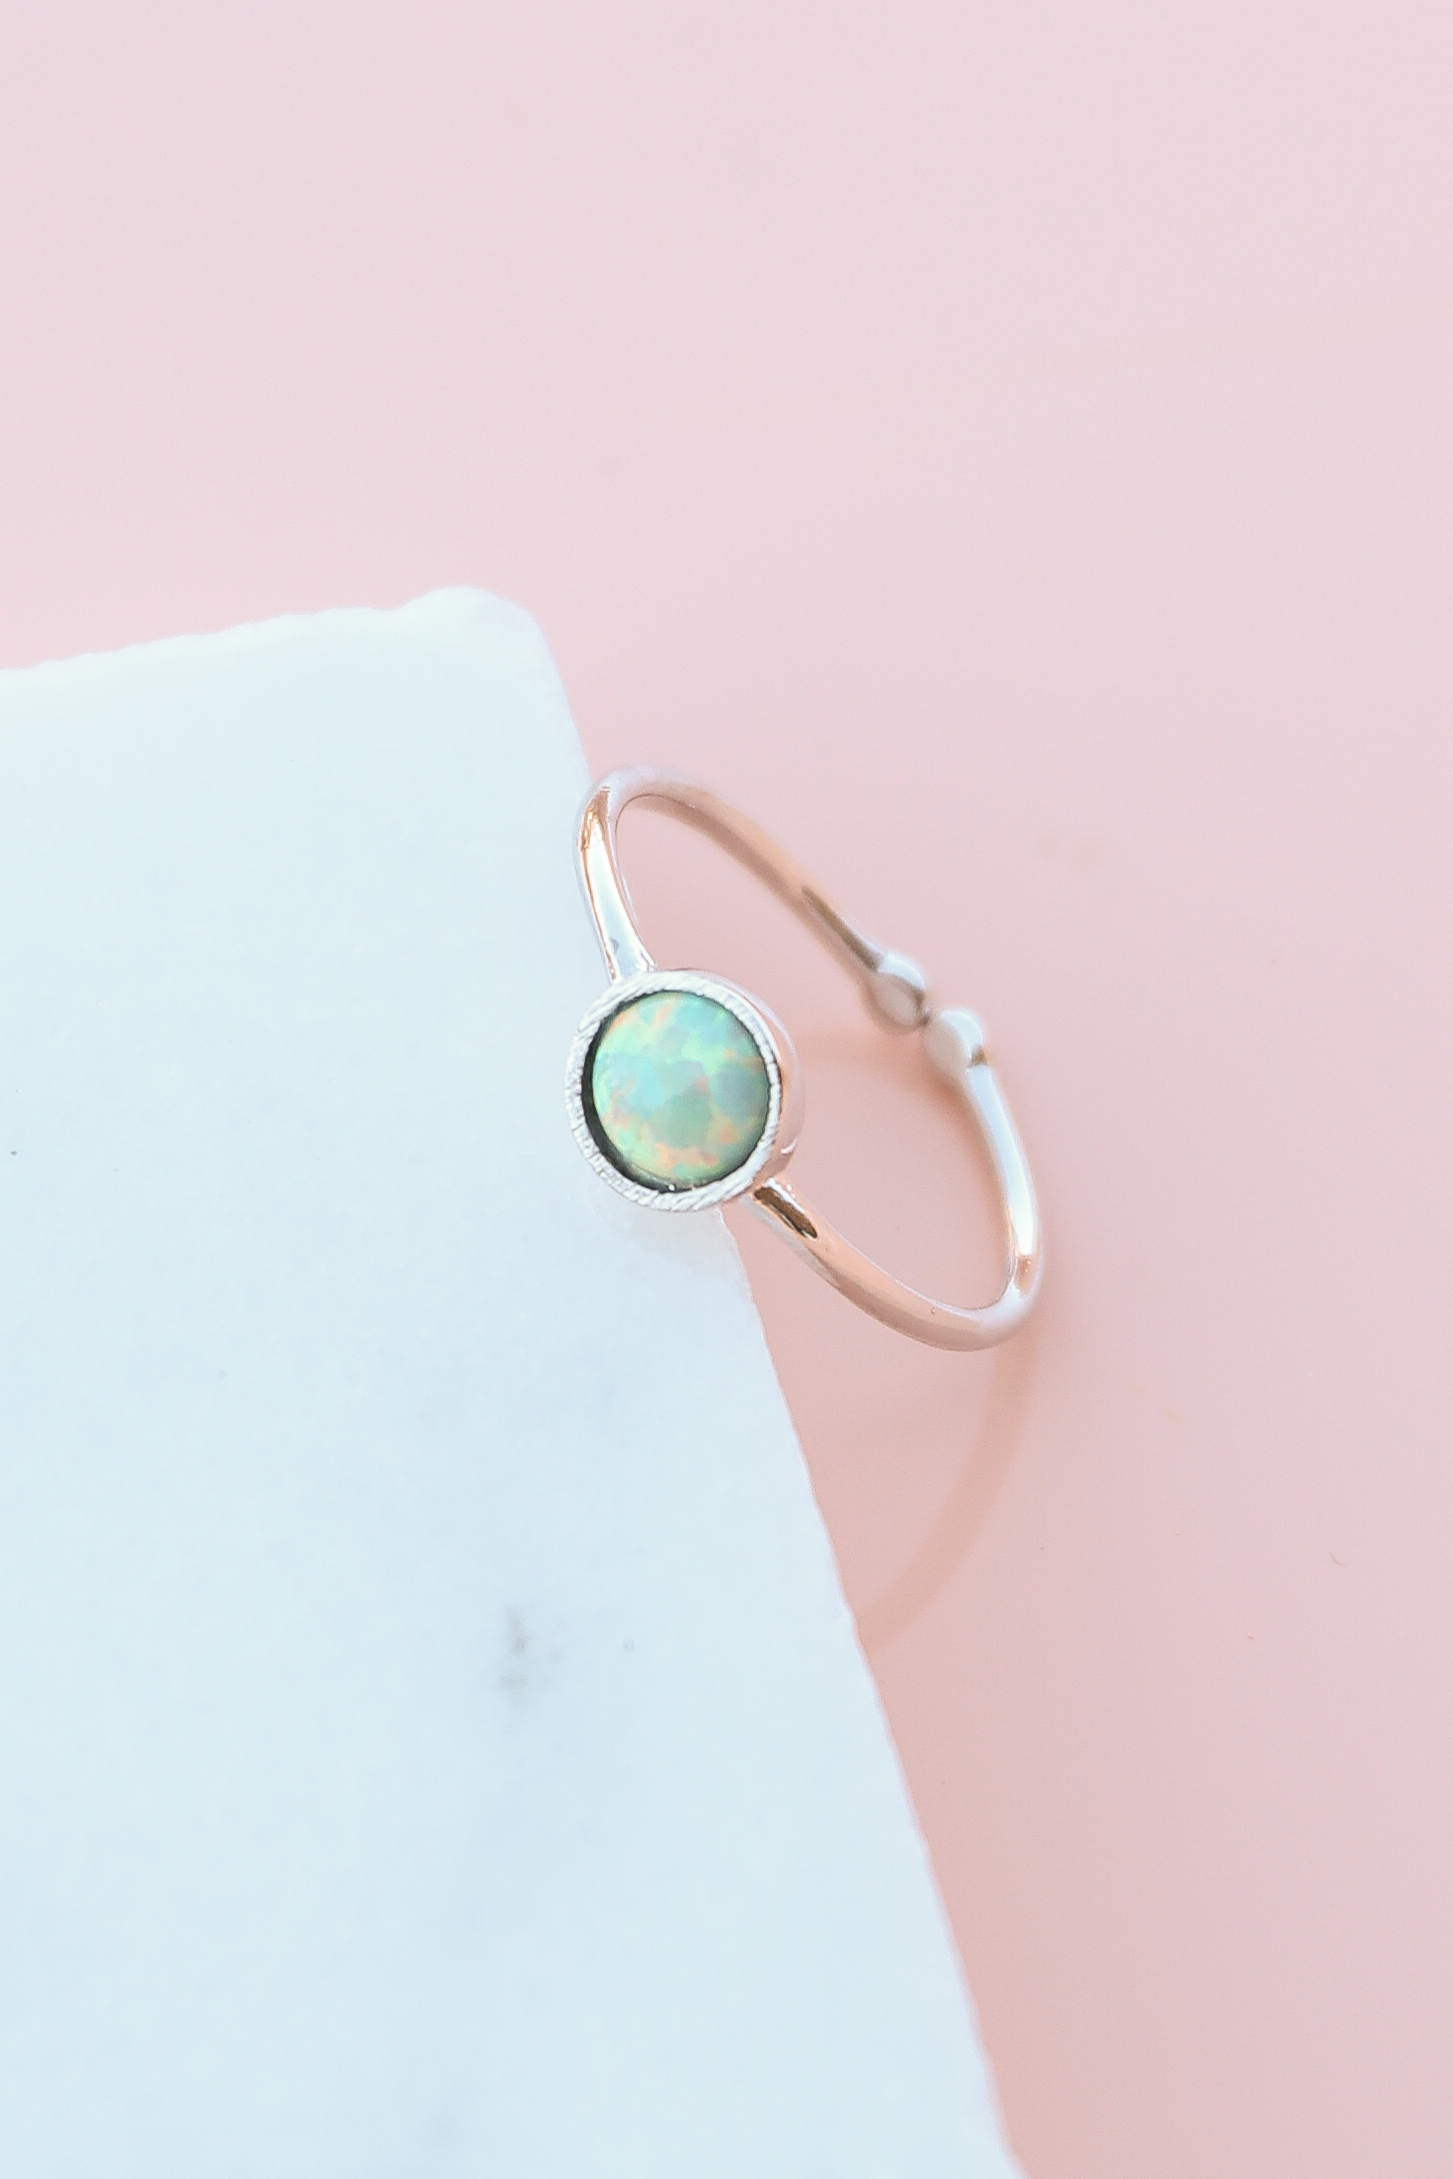 Silver Adjustable Ring with Shimmery Mint Opal Stone